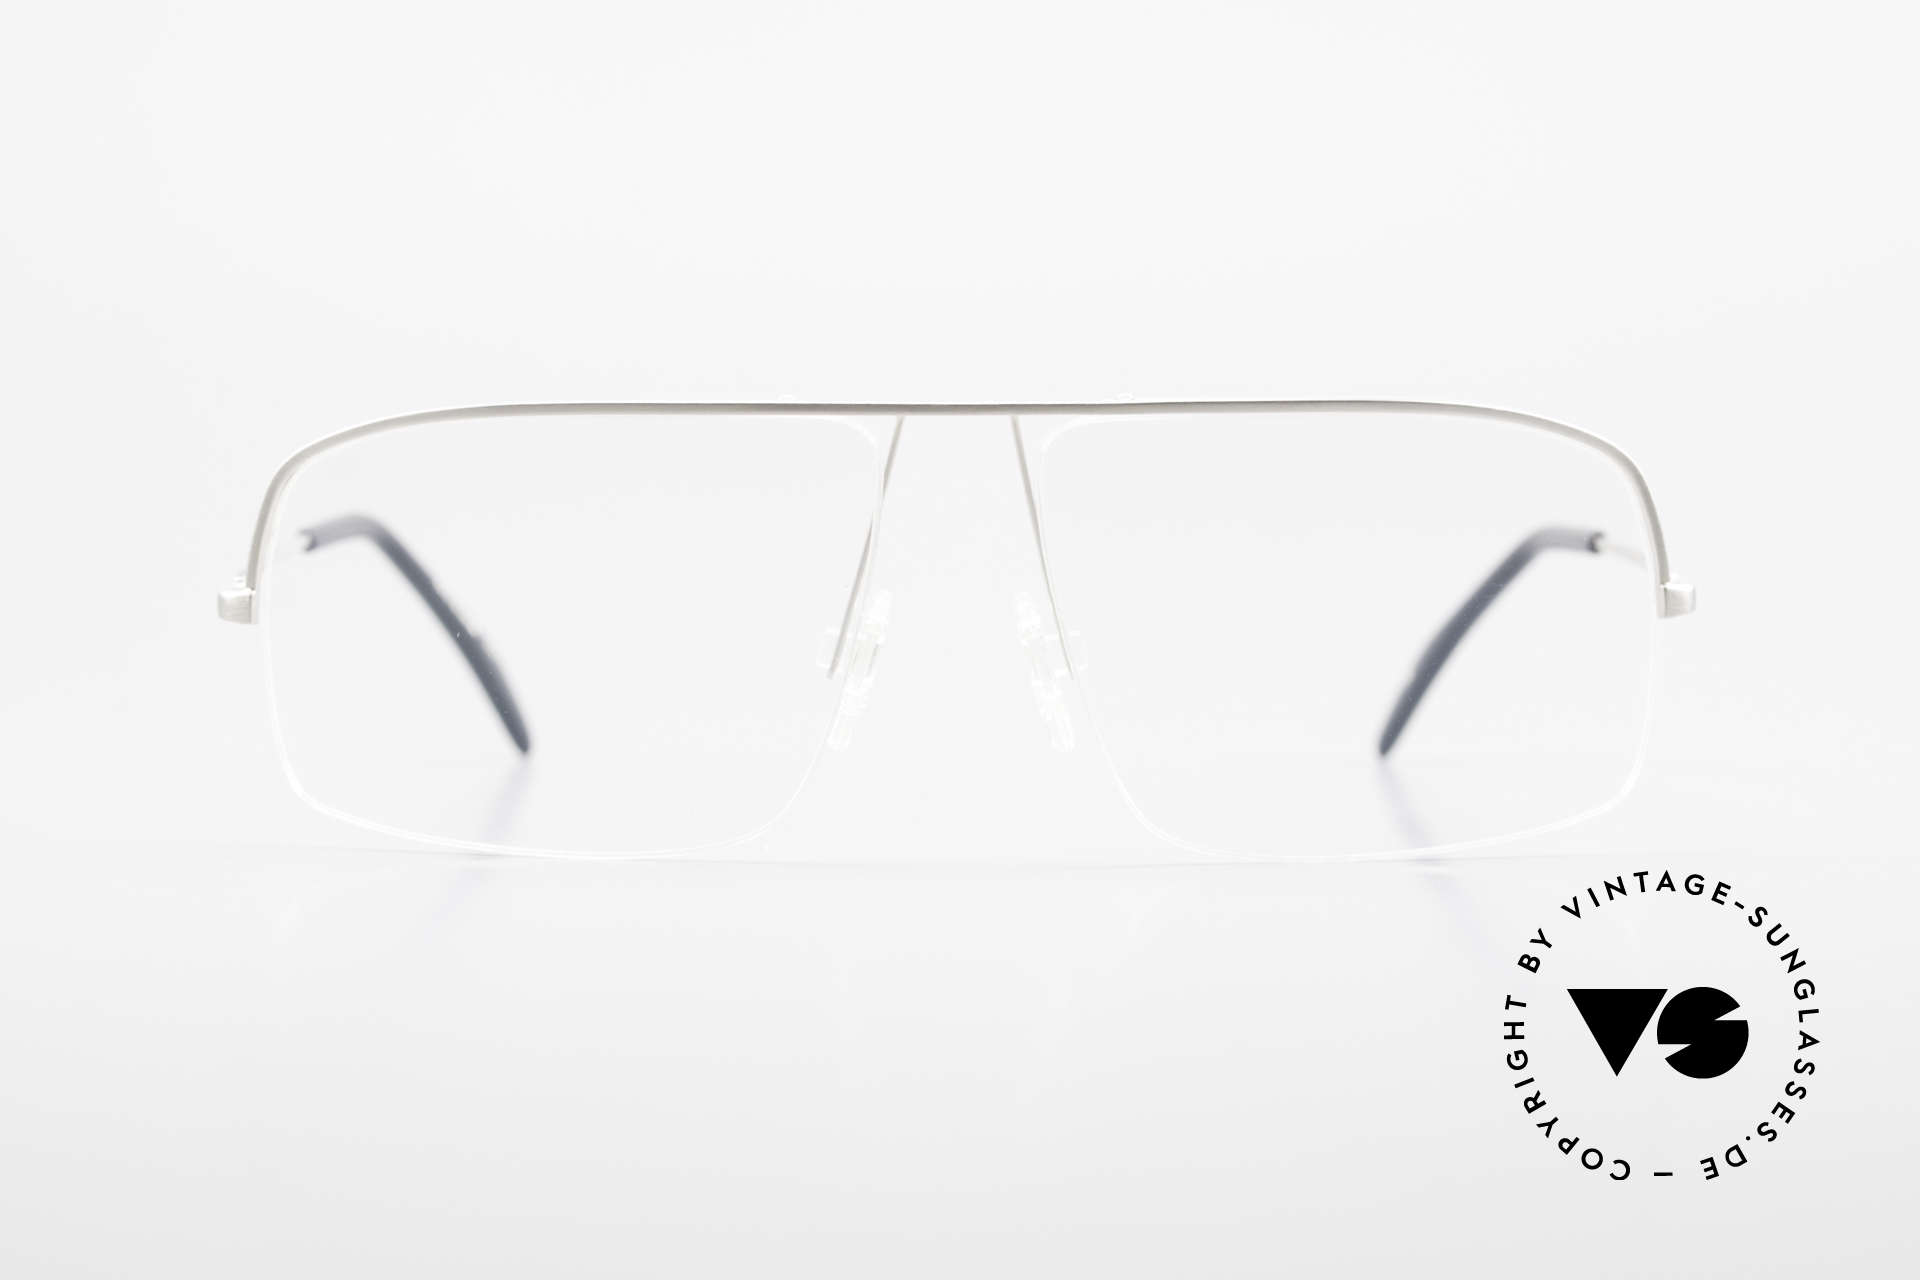 Wolfgang Proksch WP0103 New Tear Drop Titanium Frame, WP: one of the most influential eyewear designers, Made for Men